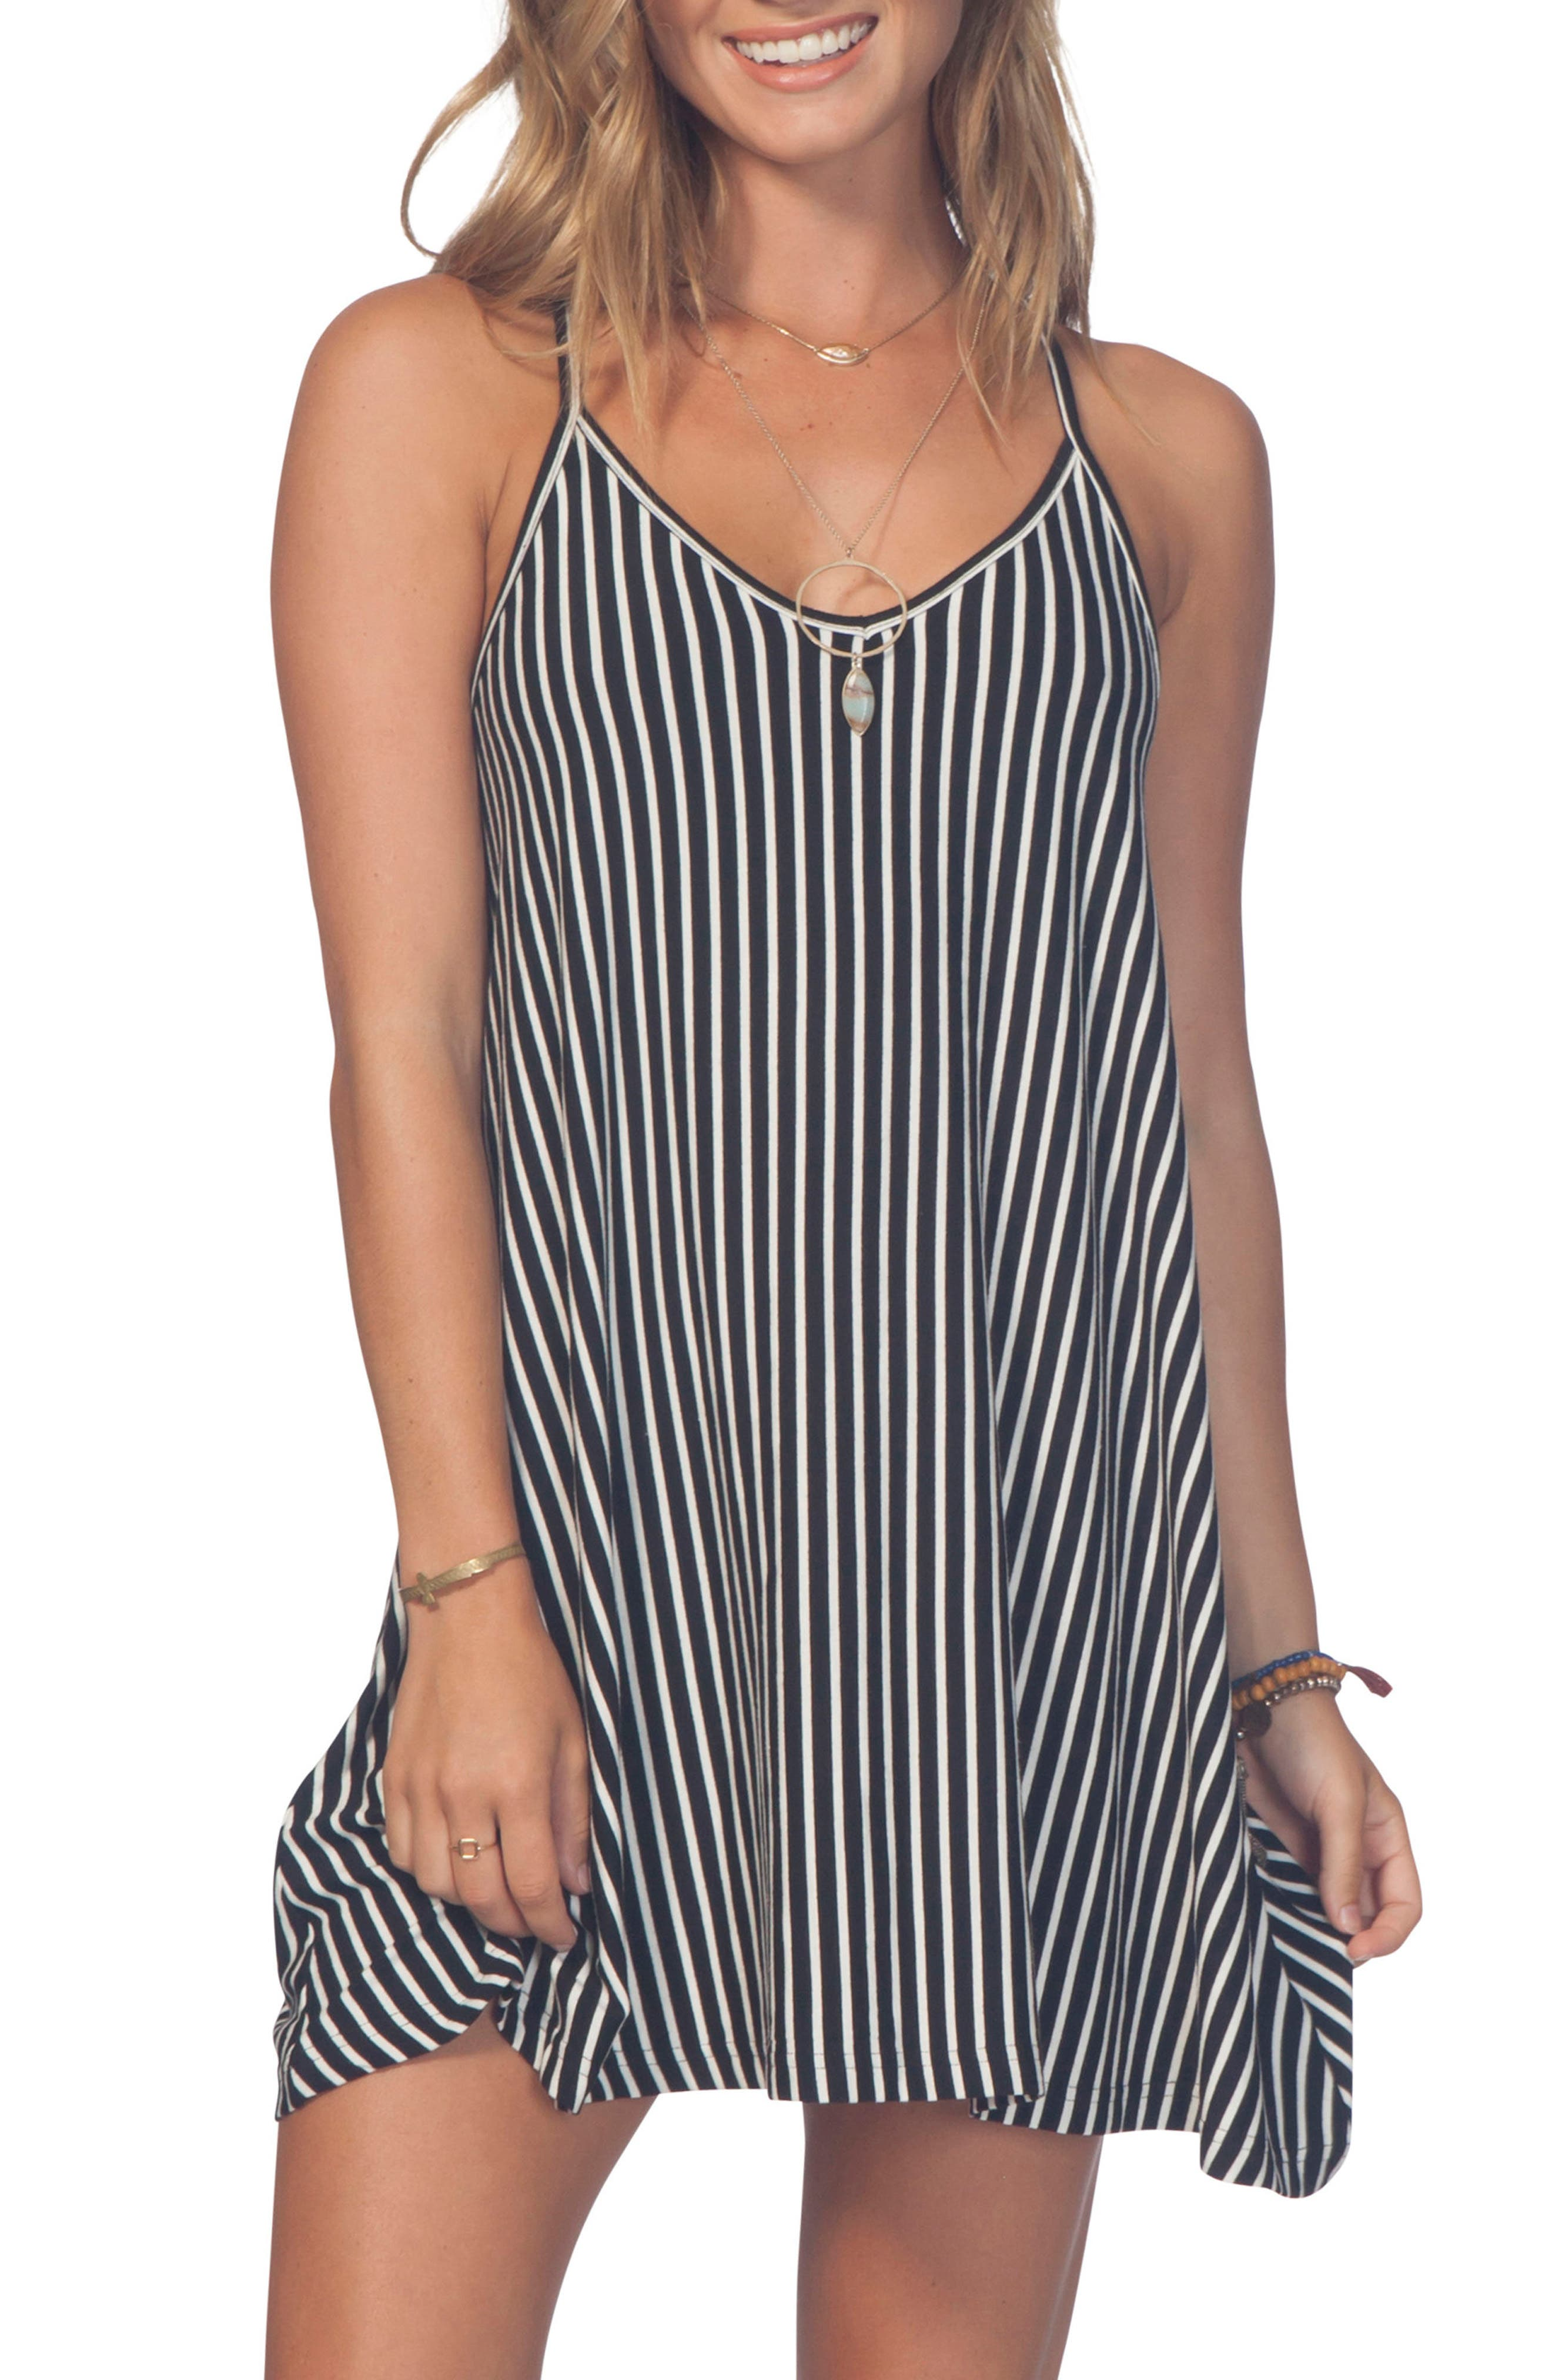 Day Tripper Strappy Swing Dress,                             Main thumbnail 1, color,                             001